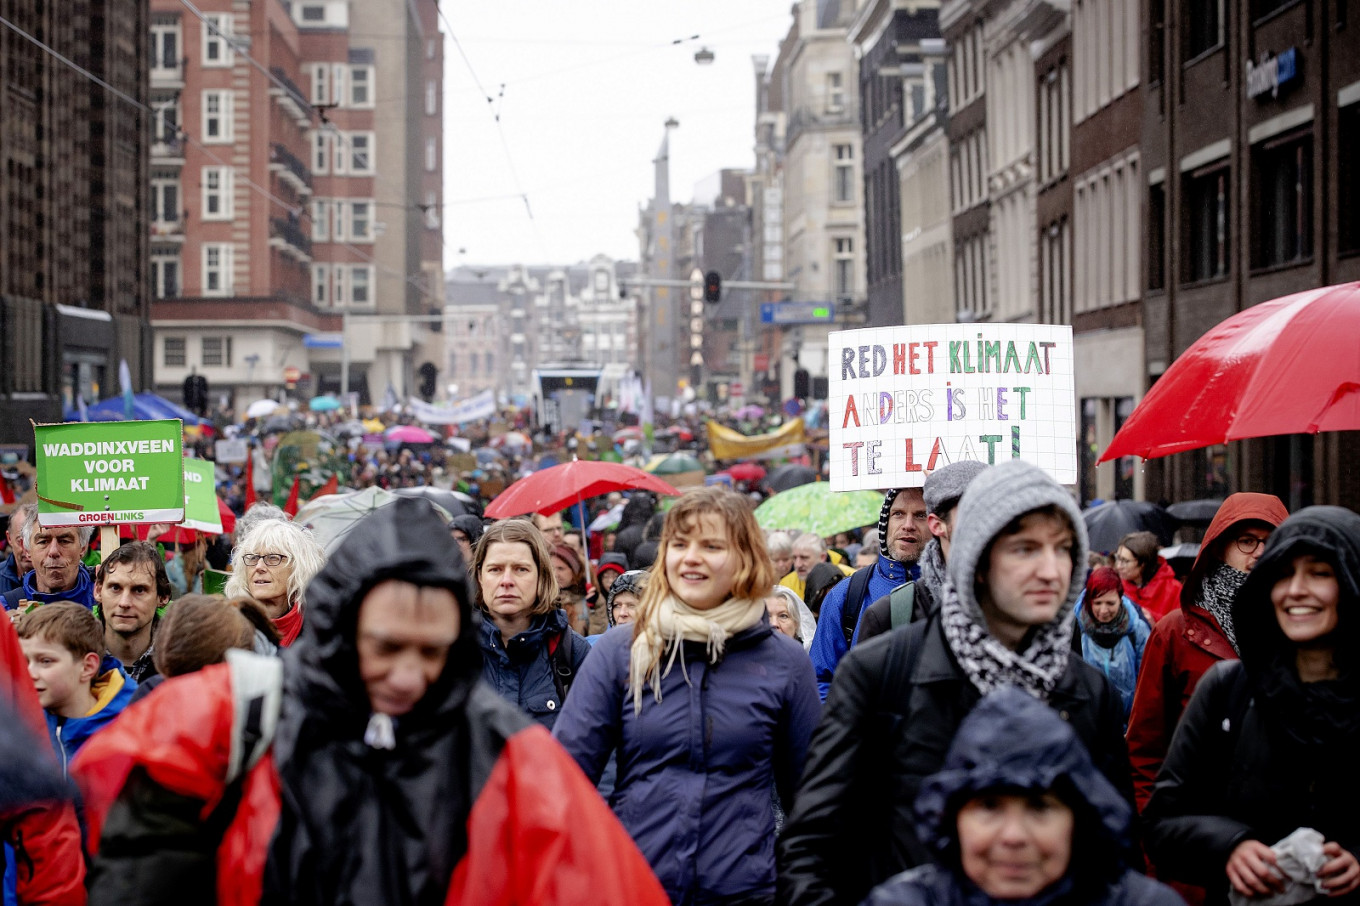 40,000 join first national climate march in Amsterdam